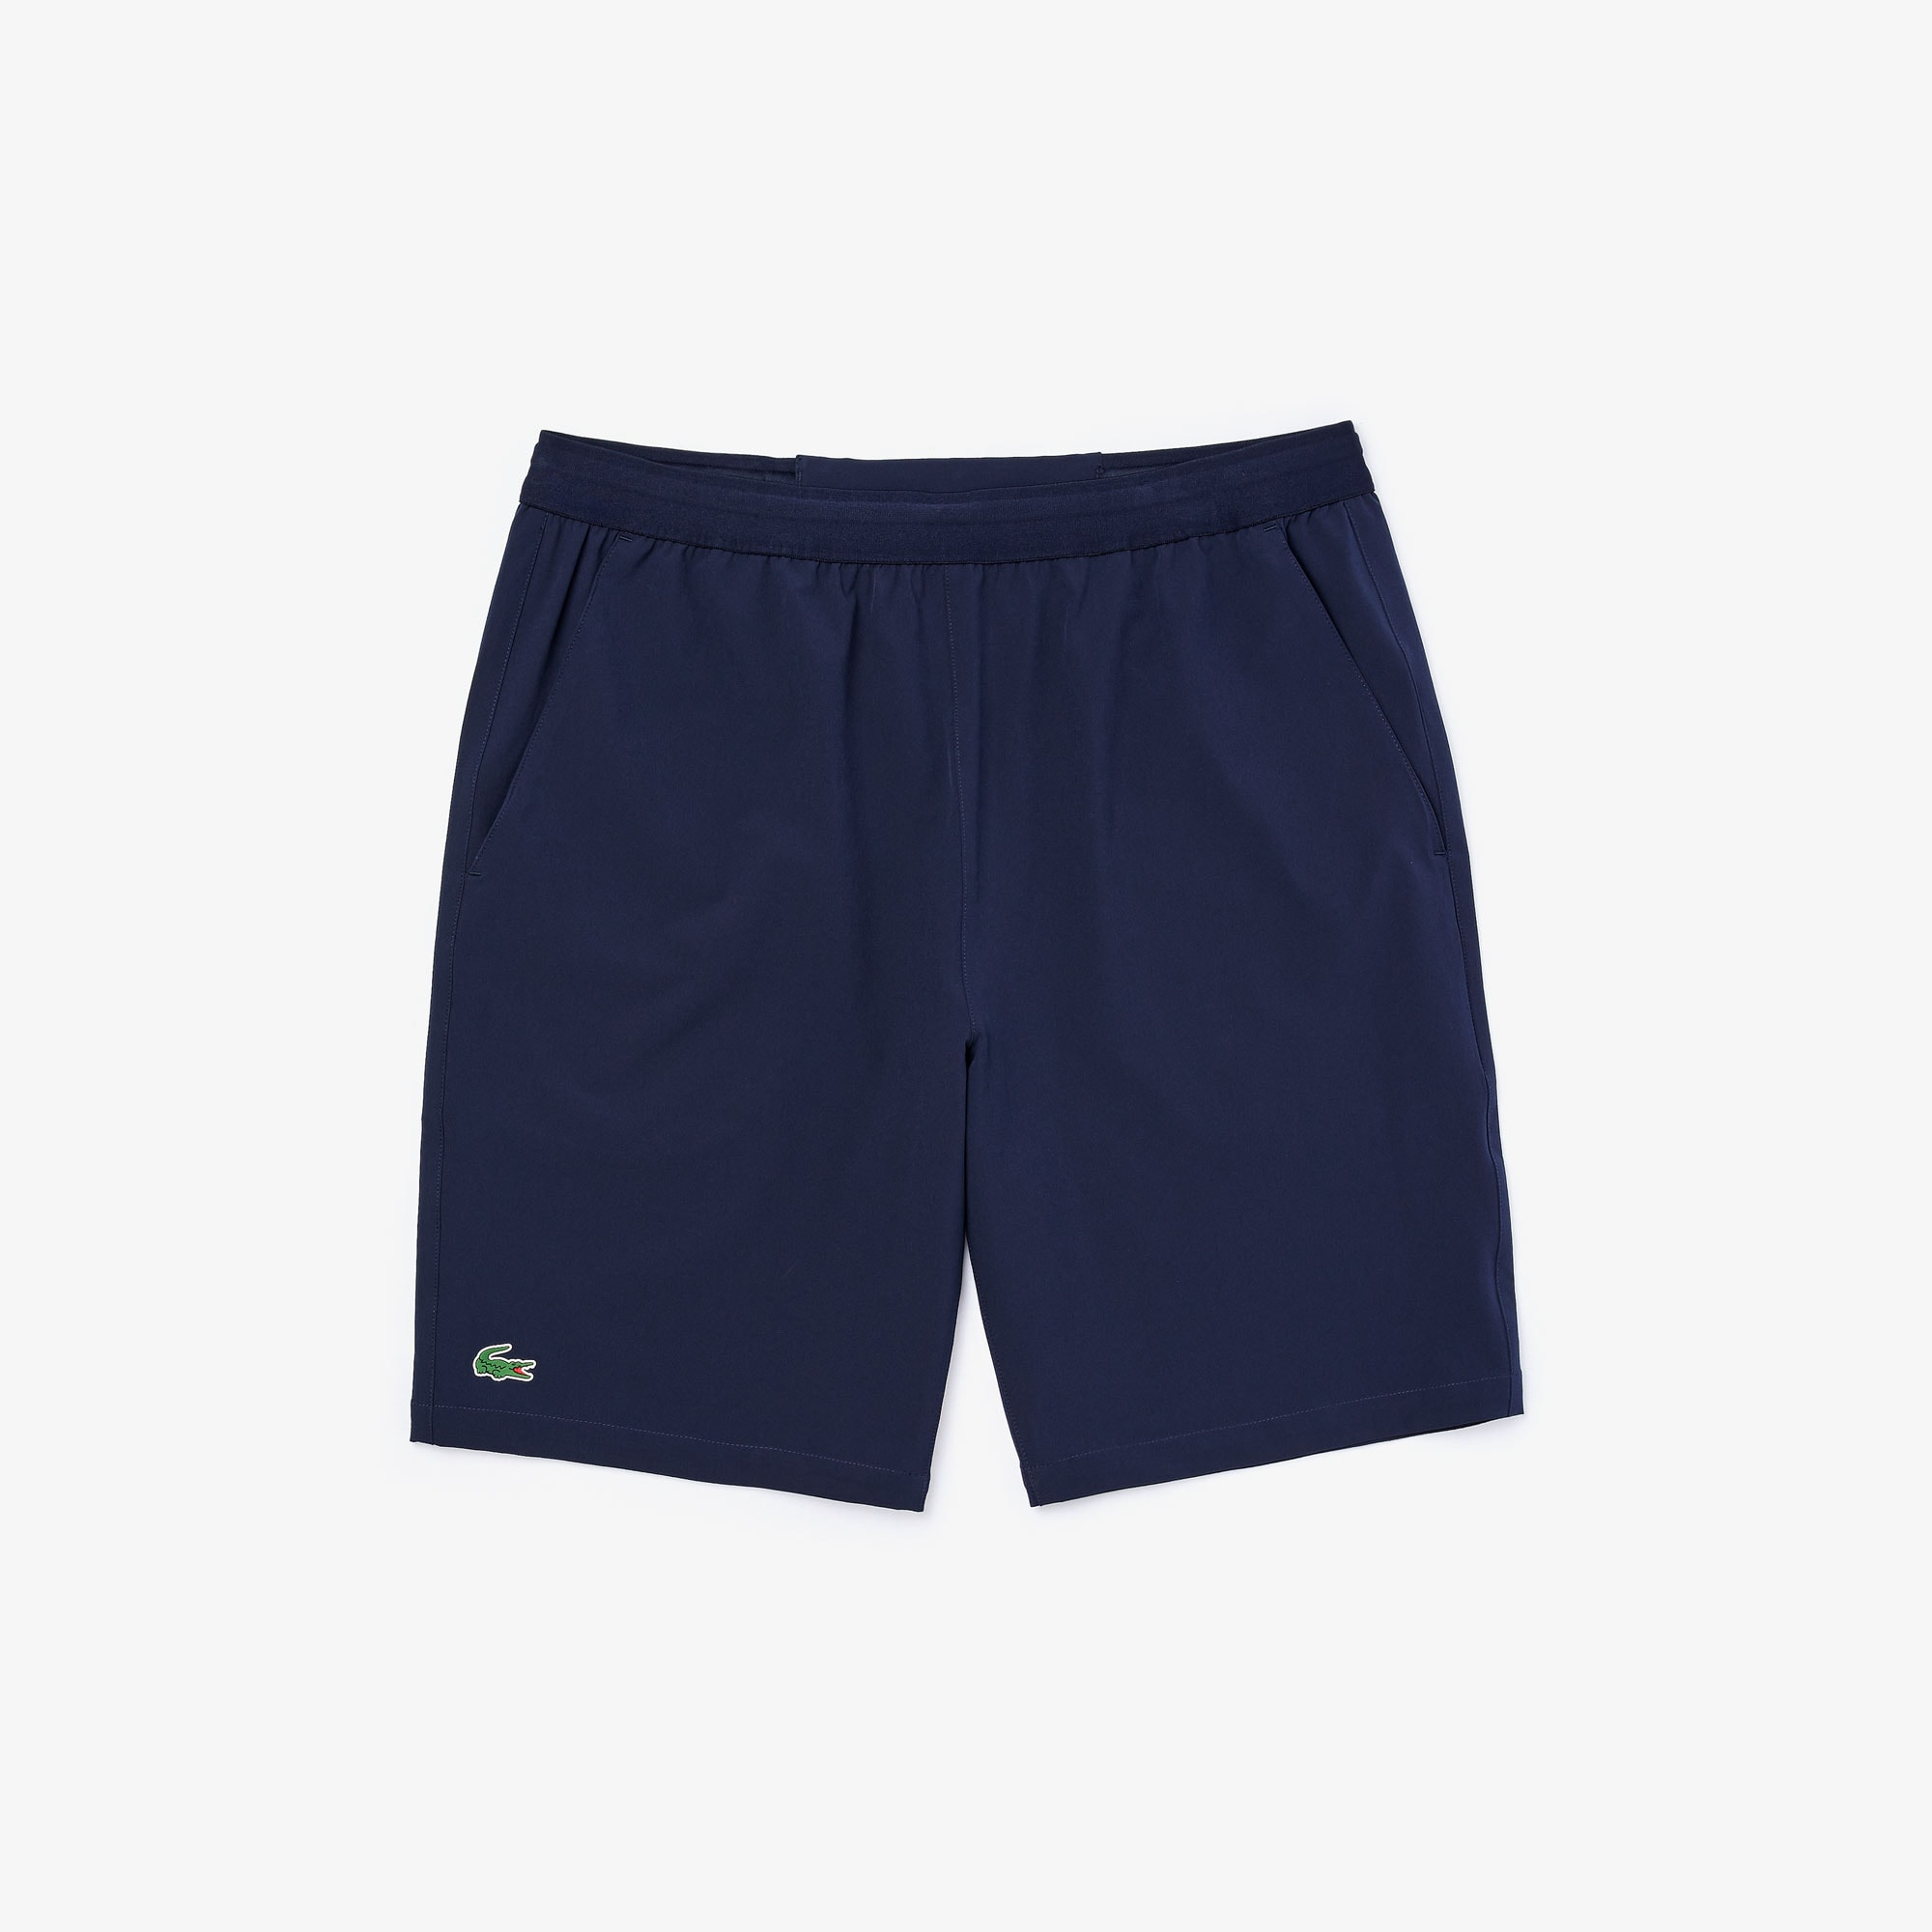 Short Lacoste SPORT Tennis Masculino Stretch Estampado